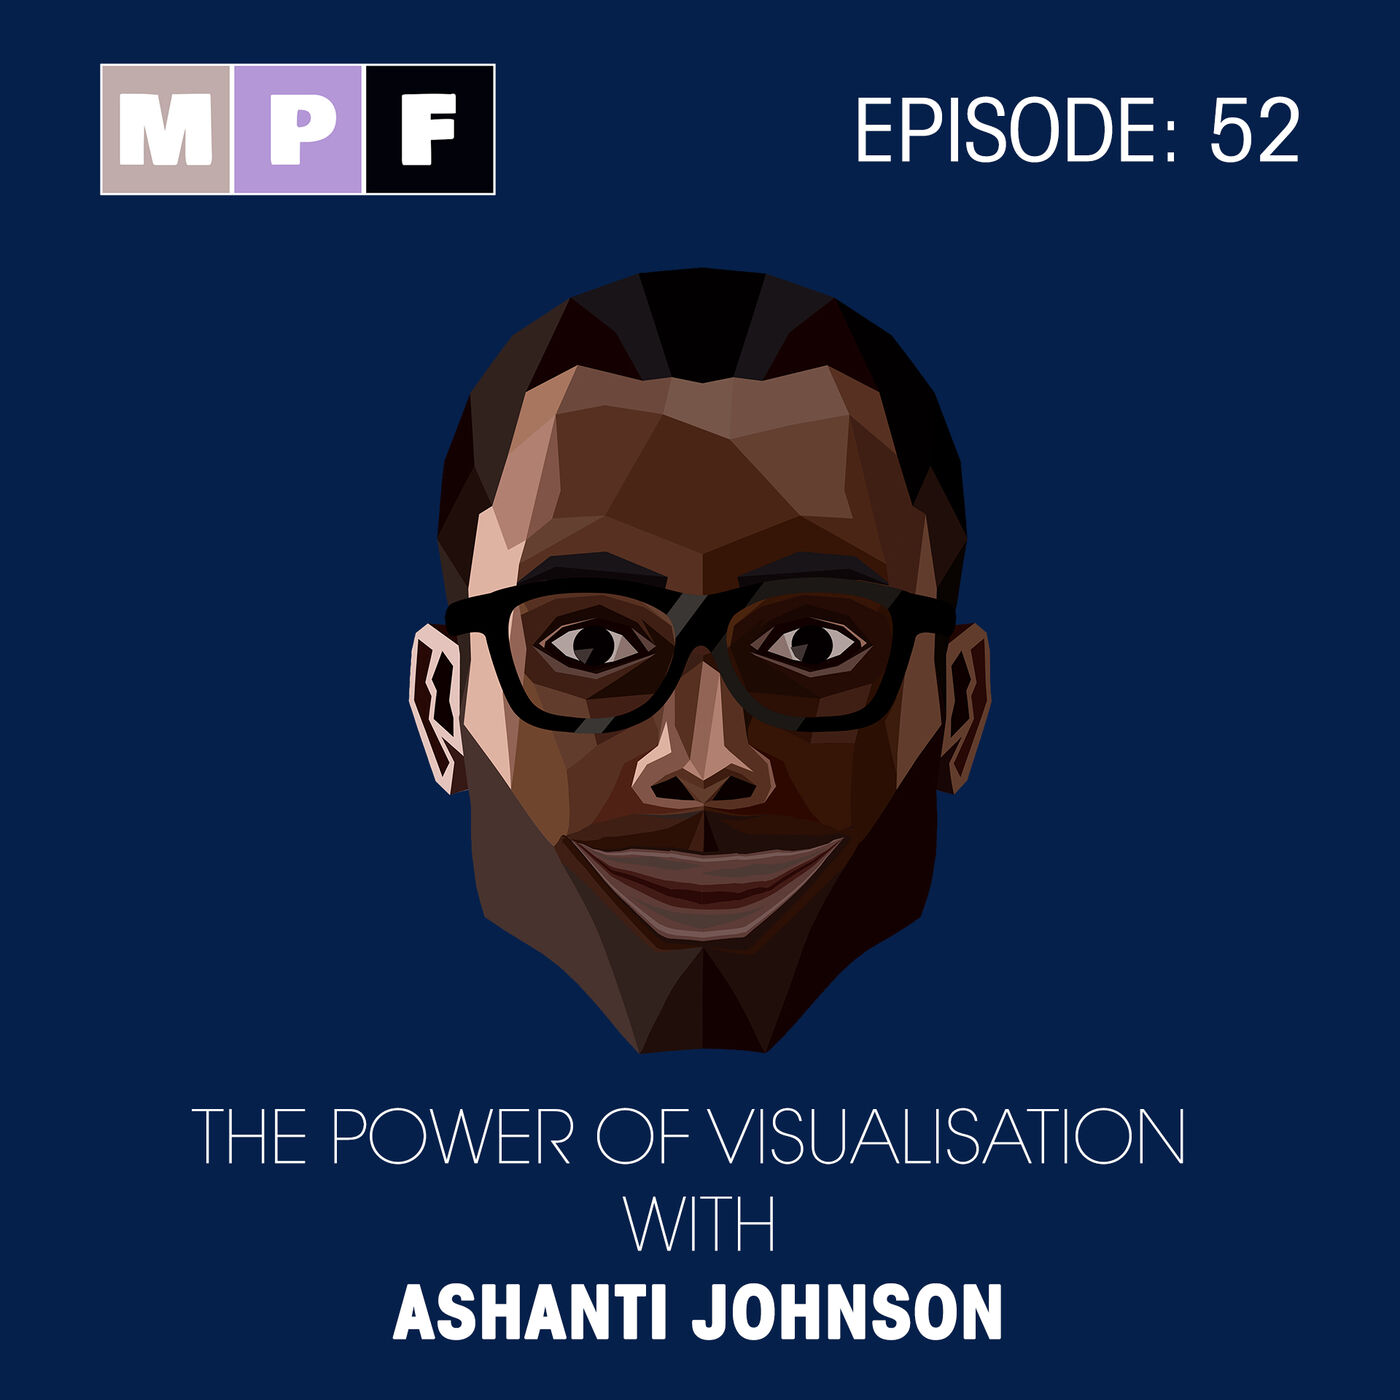 The Power of Visualisation with Ashanti Johnson